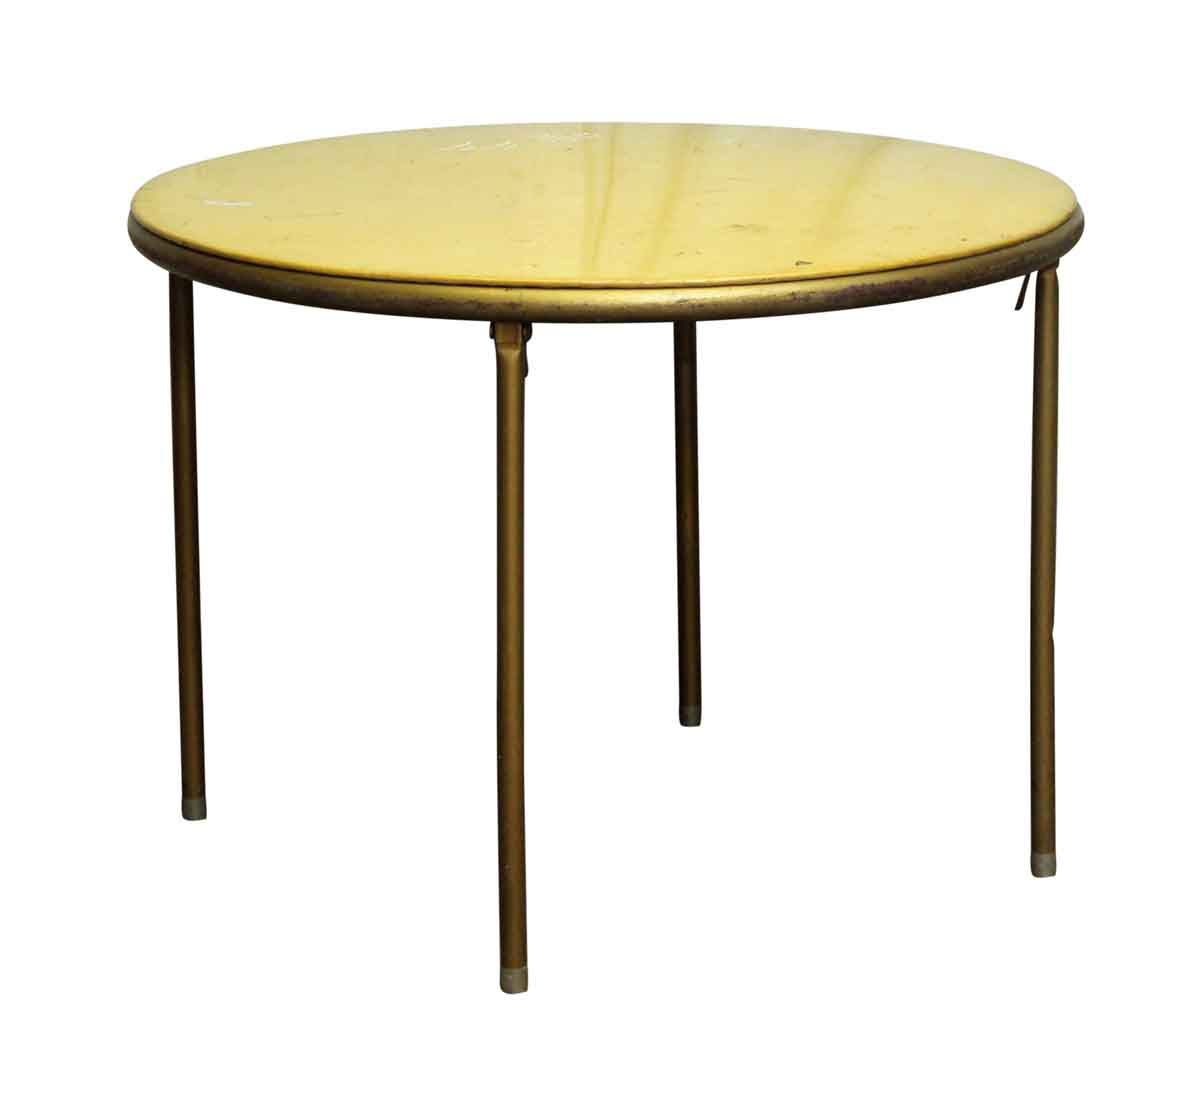 Commercial furniture 1950s round card table